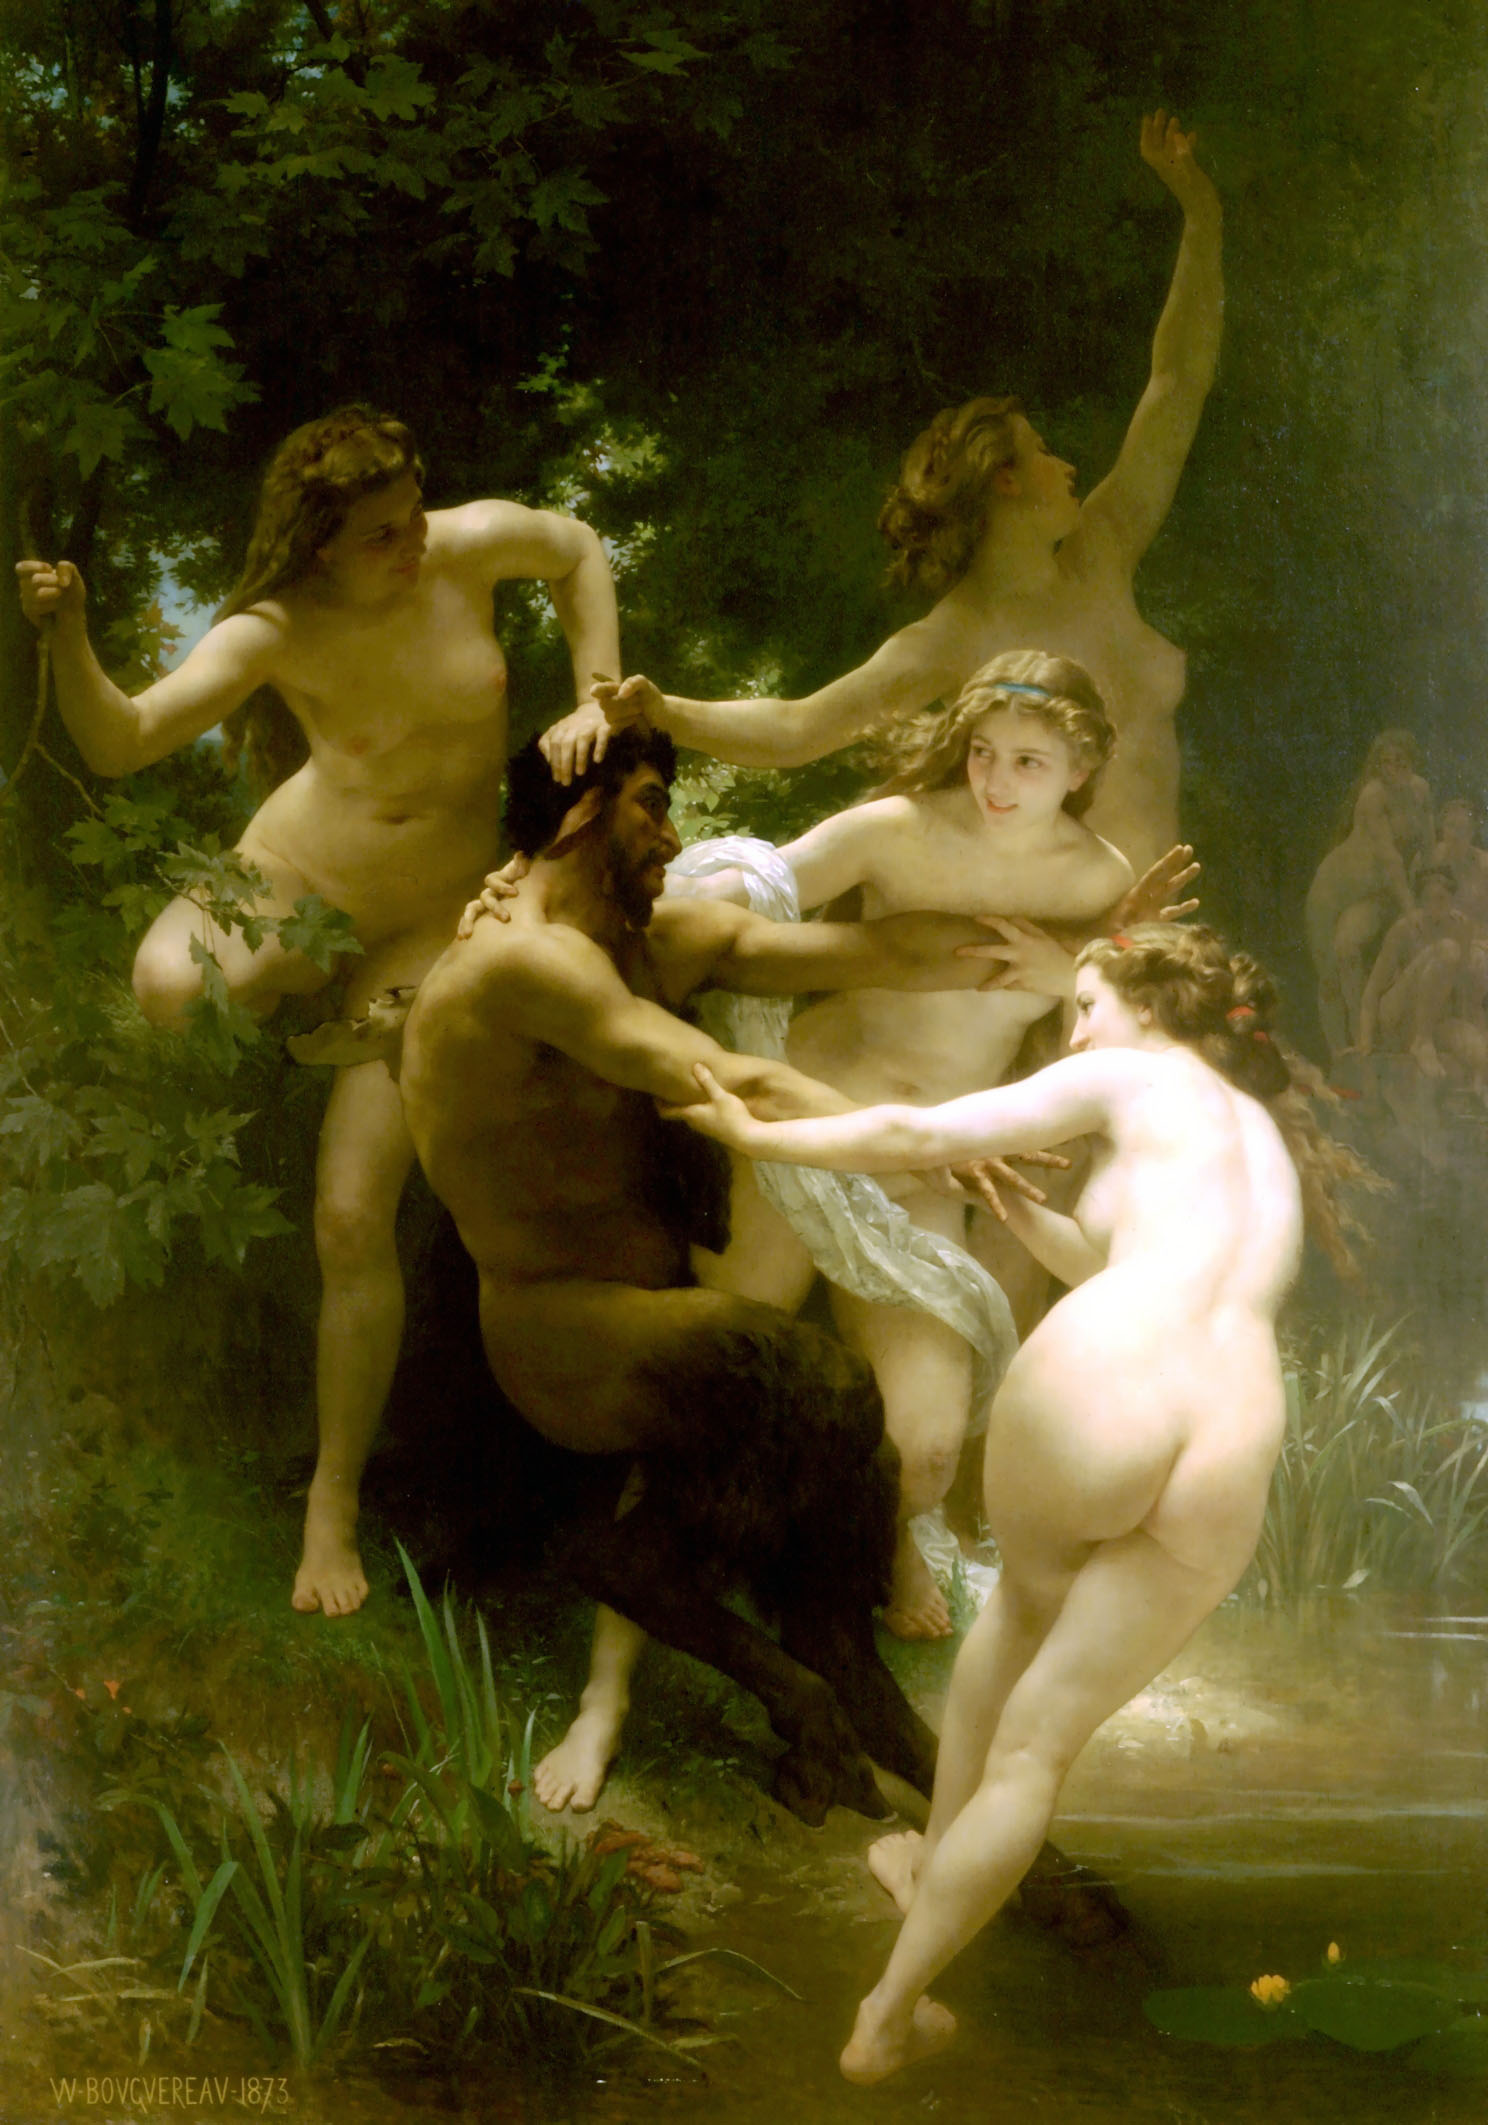 William Bouguereau (1825-1905) Ninfas e Sátiro